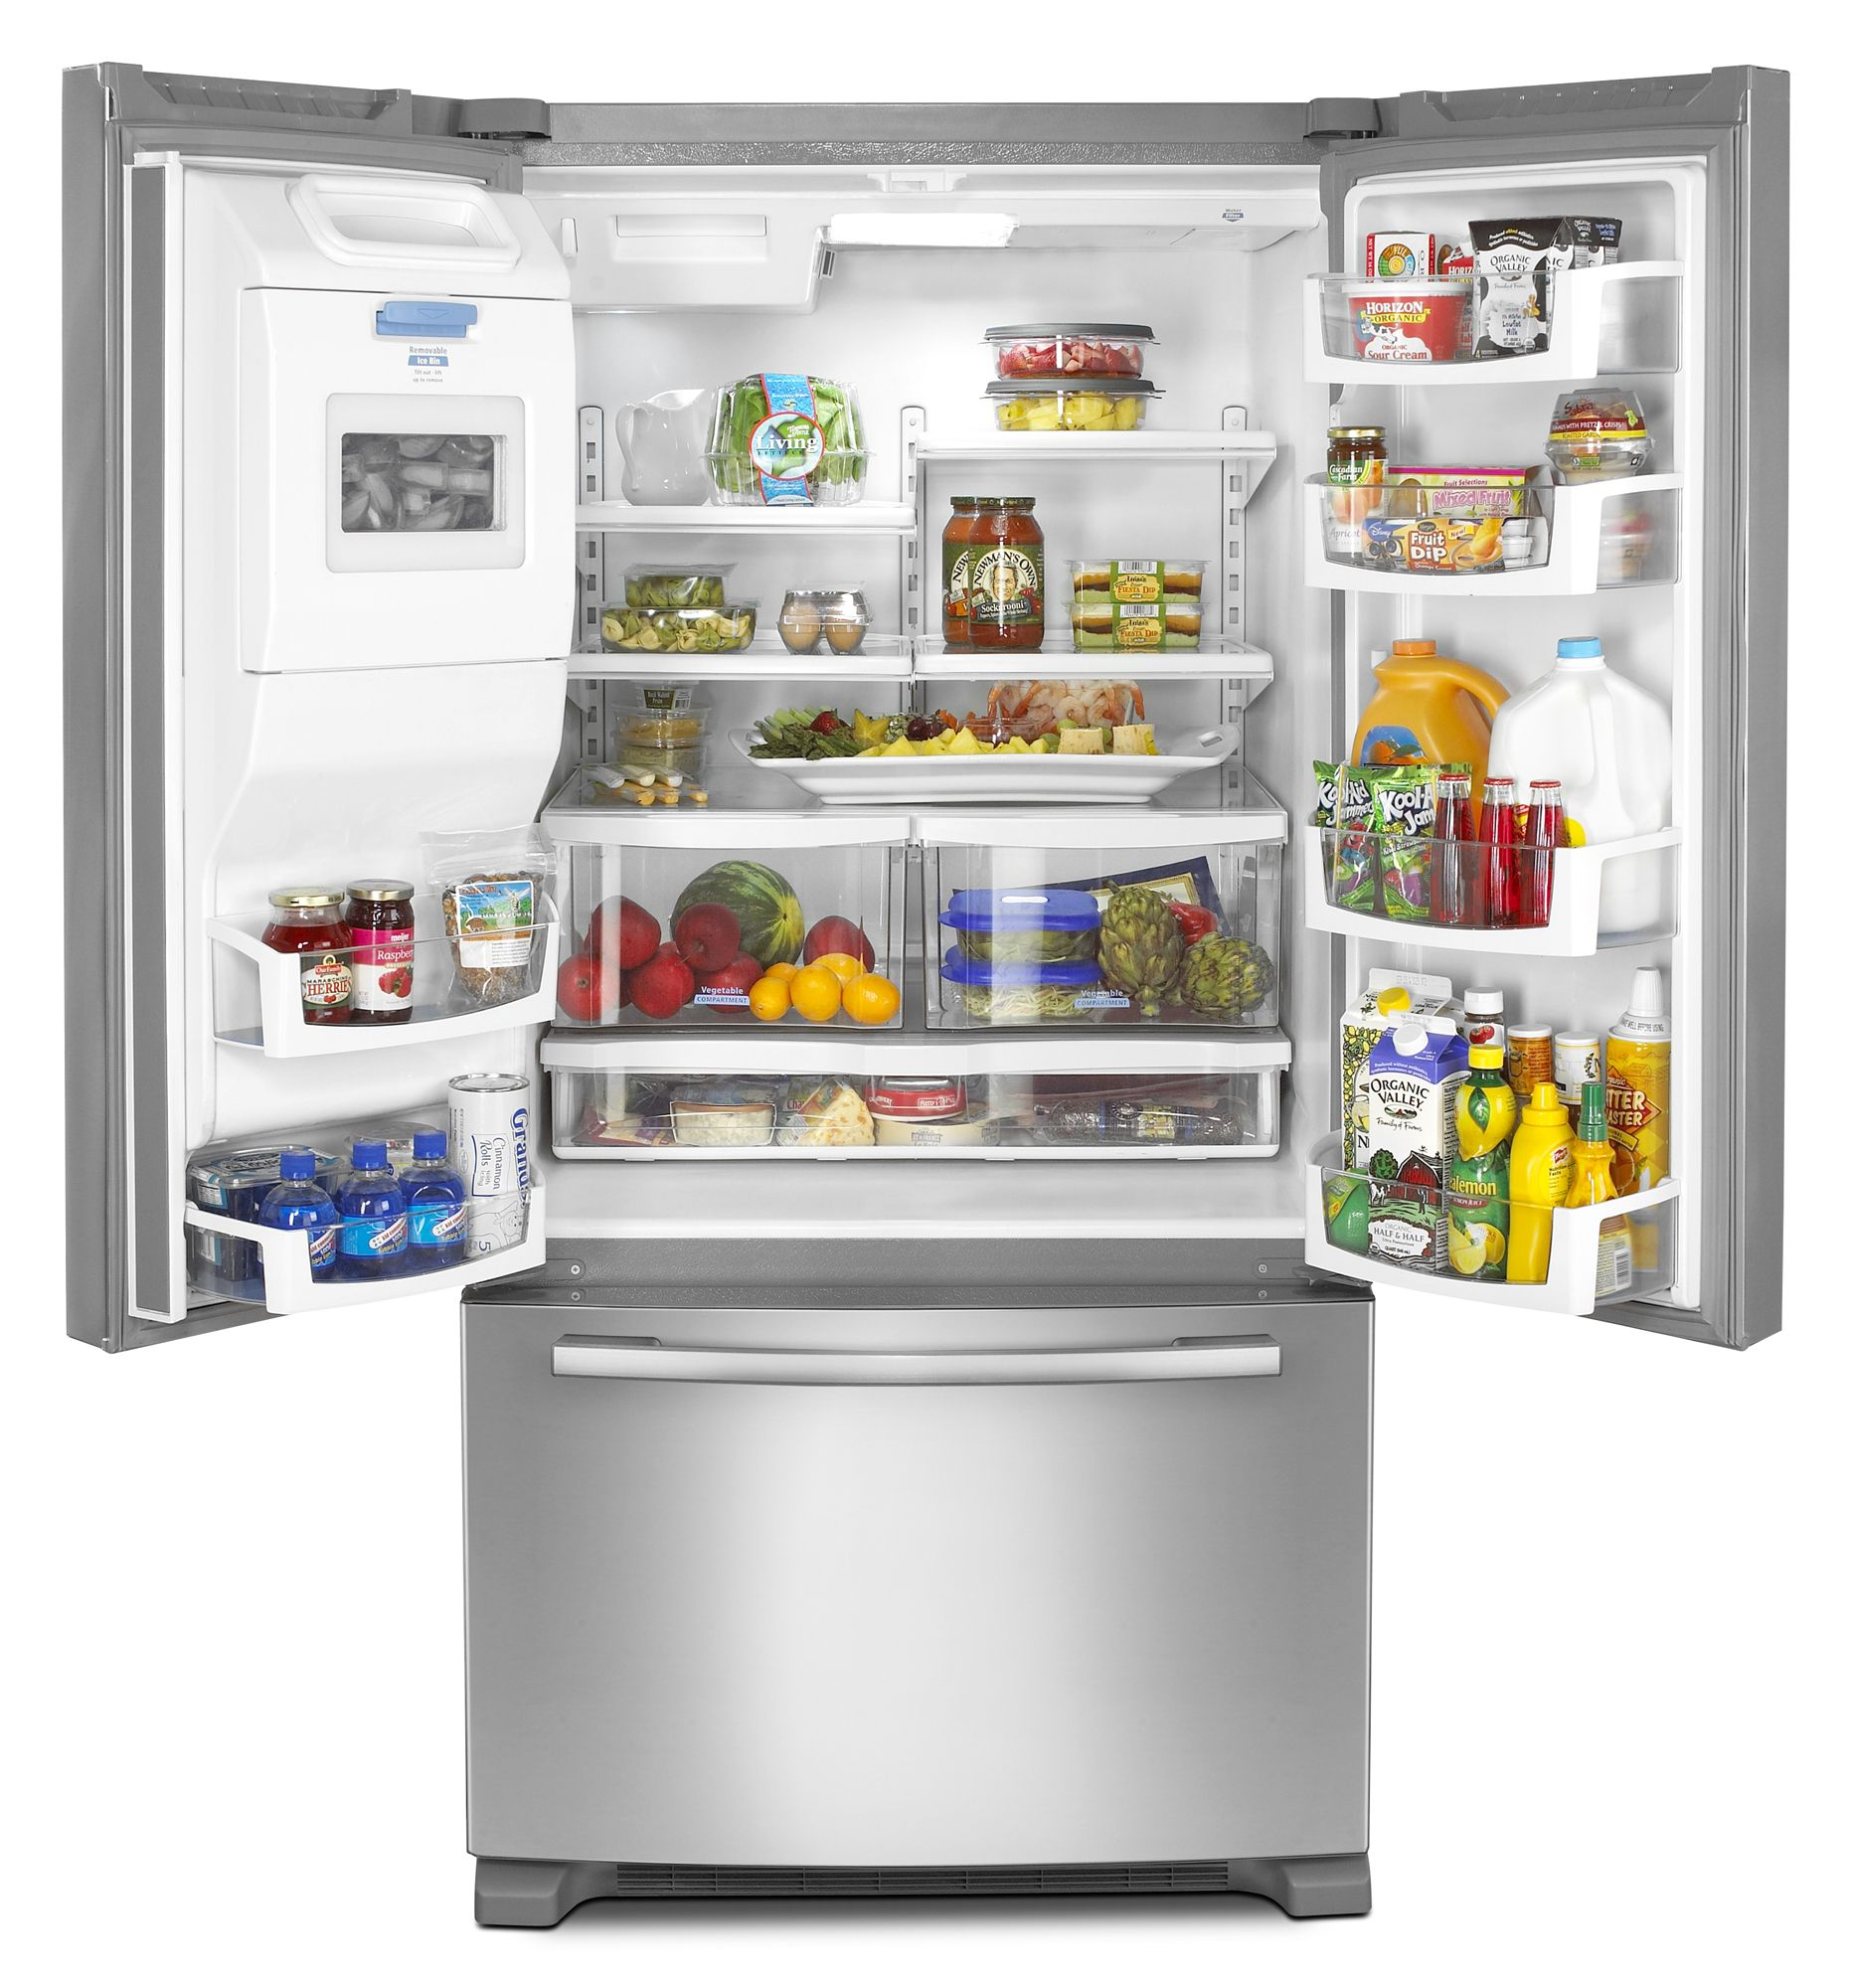 Whirlpool 26.6 cu. ft. French-Door Bottom Freezer Refrigerator w/ Ice & Water Dispenser (GI7FVCXW)